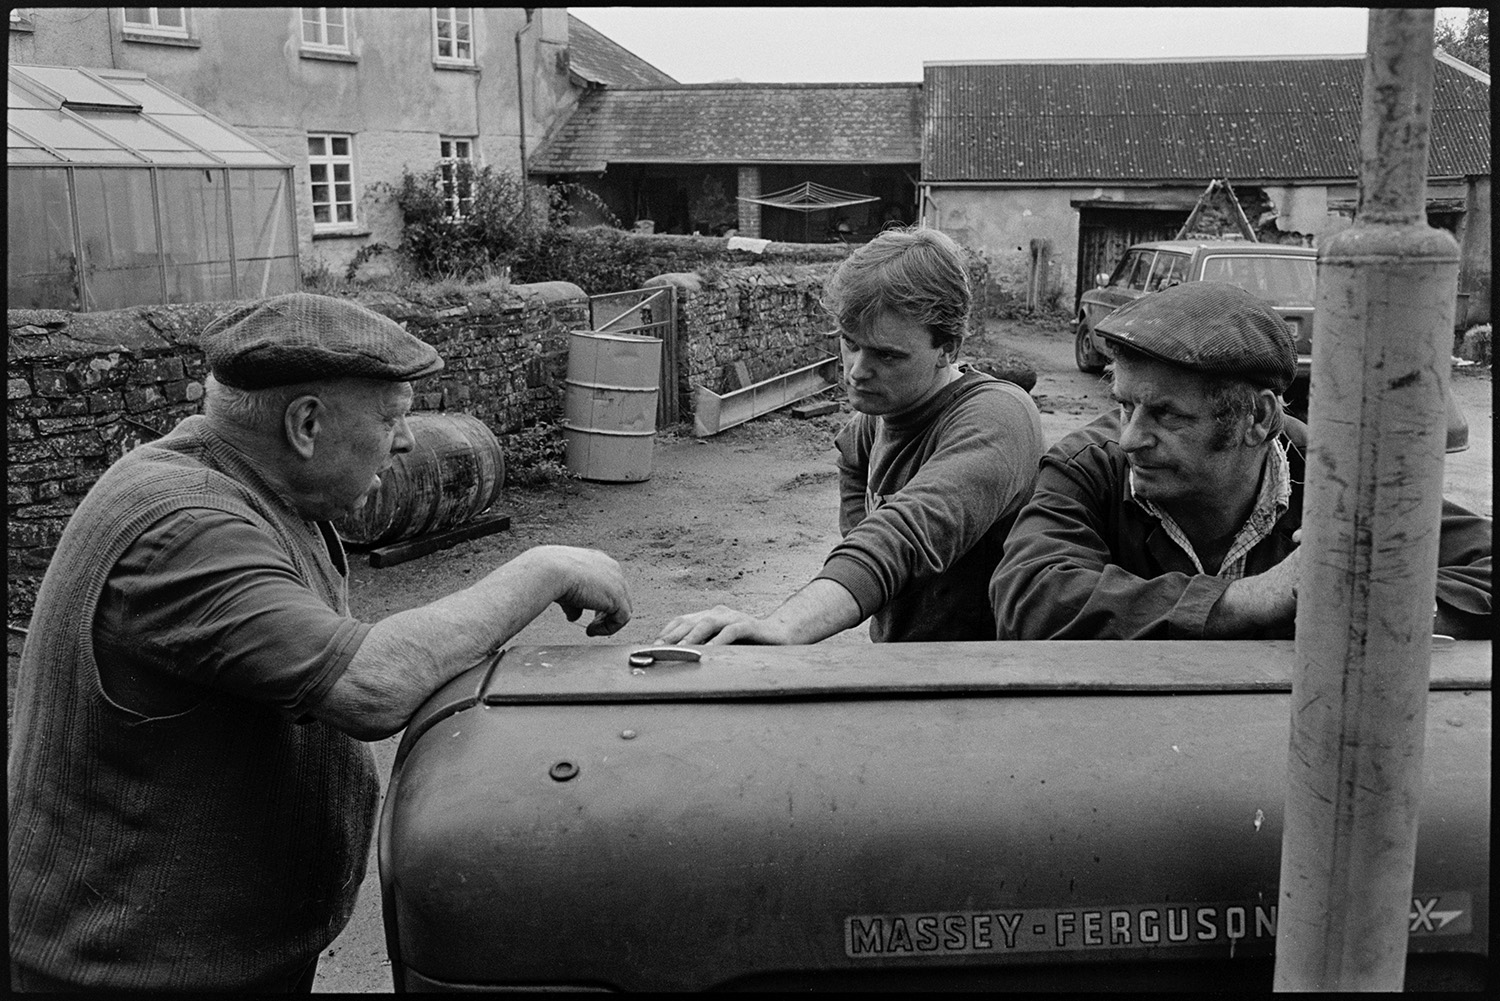 Farmers pressing cider in barn. Baskets of apples poured into crusher.<br /> [Bill Bending, on the left, and two other men, talking in the farmyard at Spittle, Chulmleigh. They are standing by a Massey Ferguson tractor, with farm buildings in the background.]